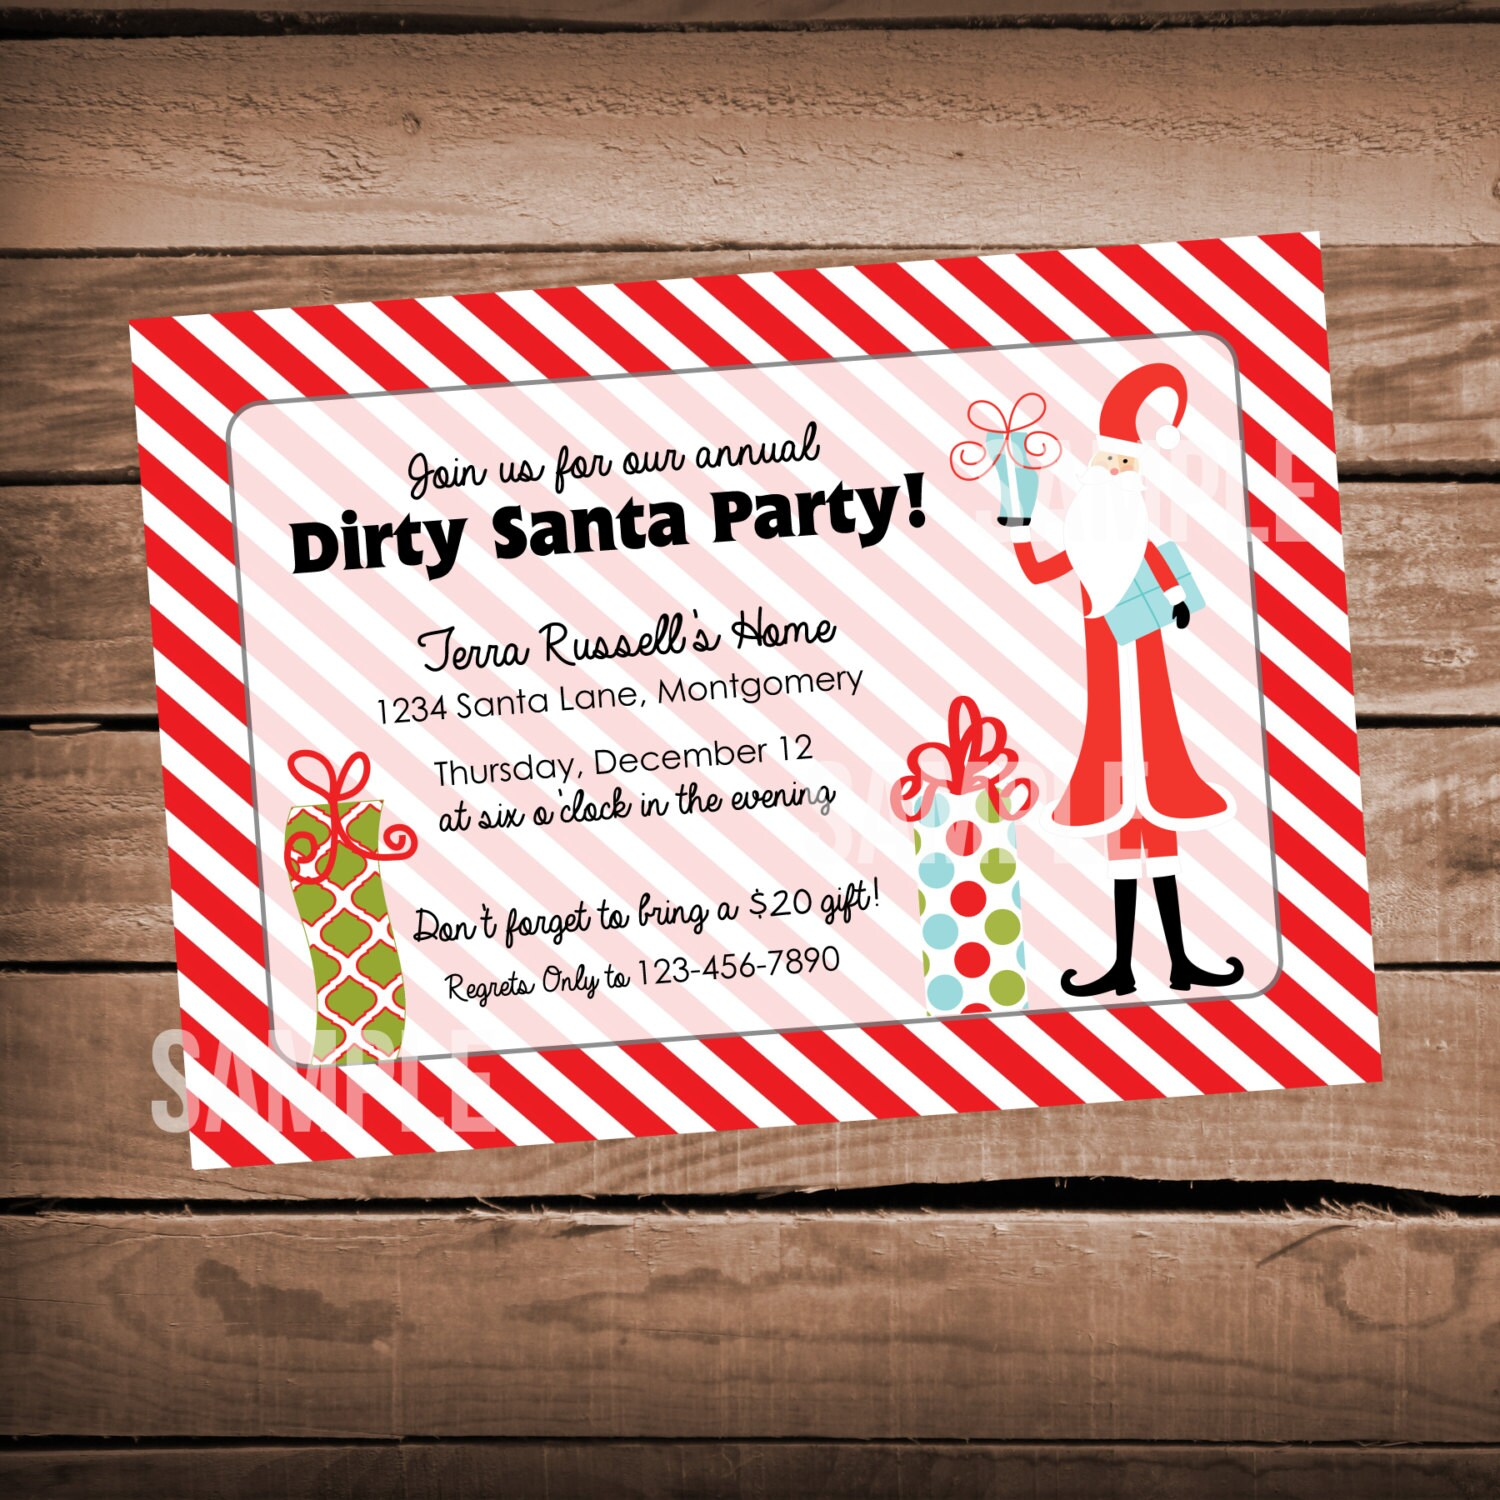 Christmas Party Invitation Open House DIrty Santa Red